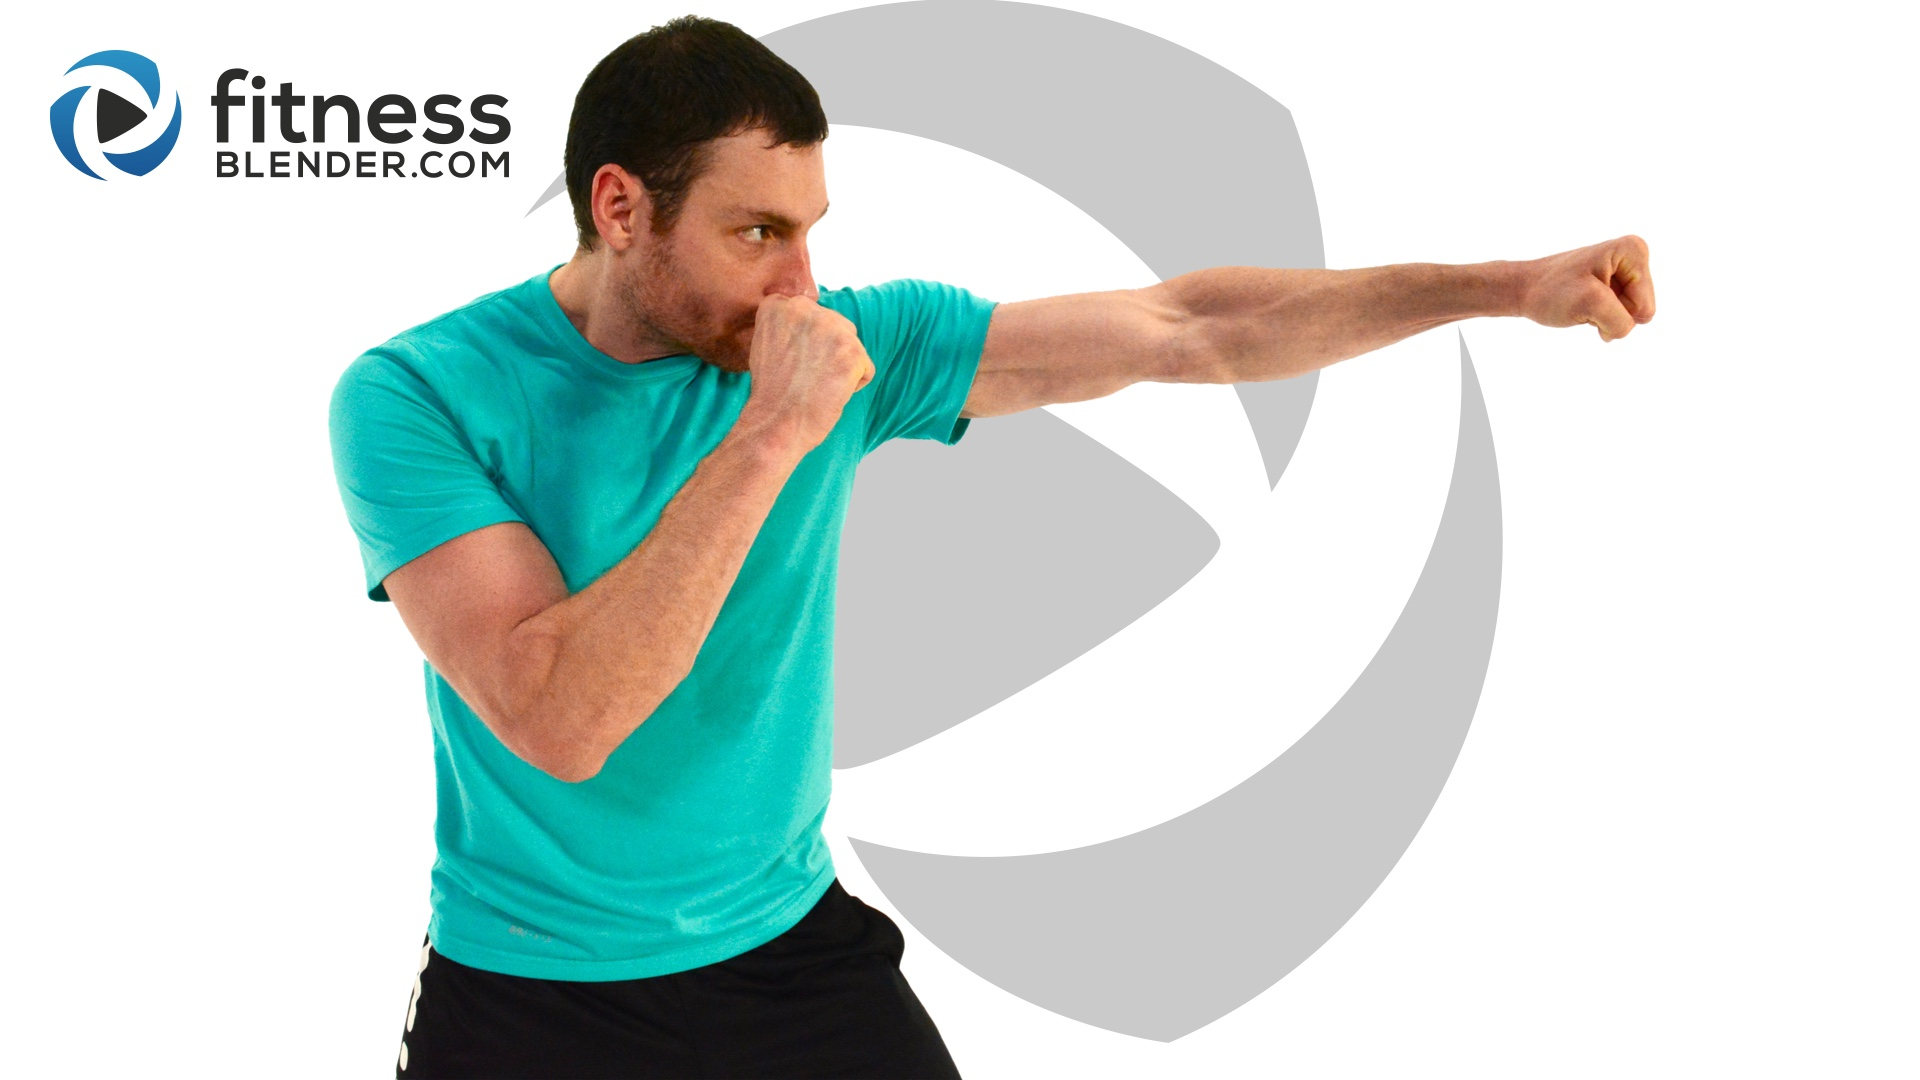 Communication on this topic: Shortcuts: Kickboxing Uppercut Workout Video, shortcuts-kickboxing-uppercut-workout-video/